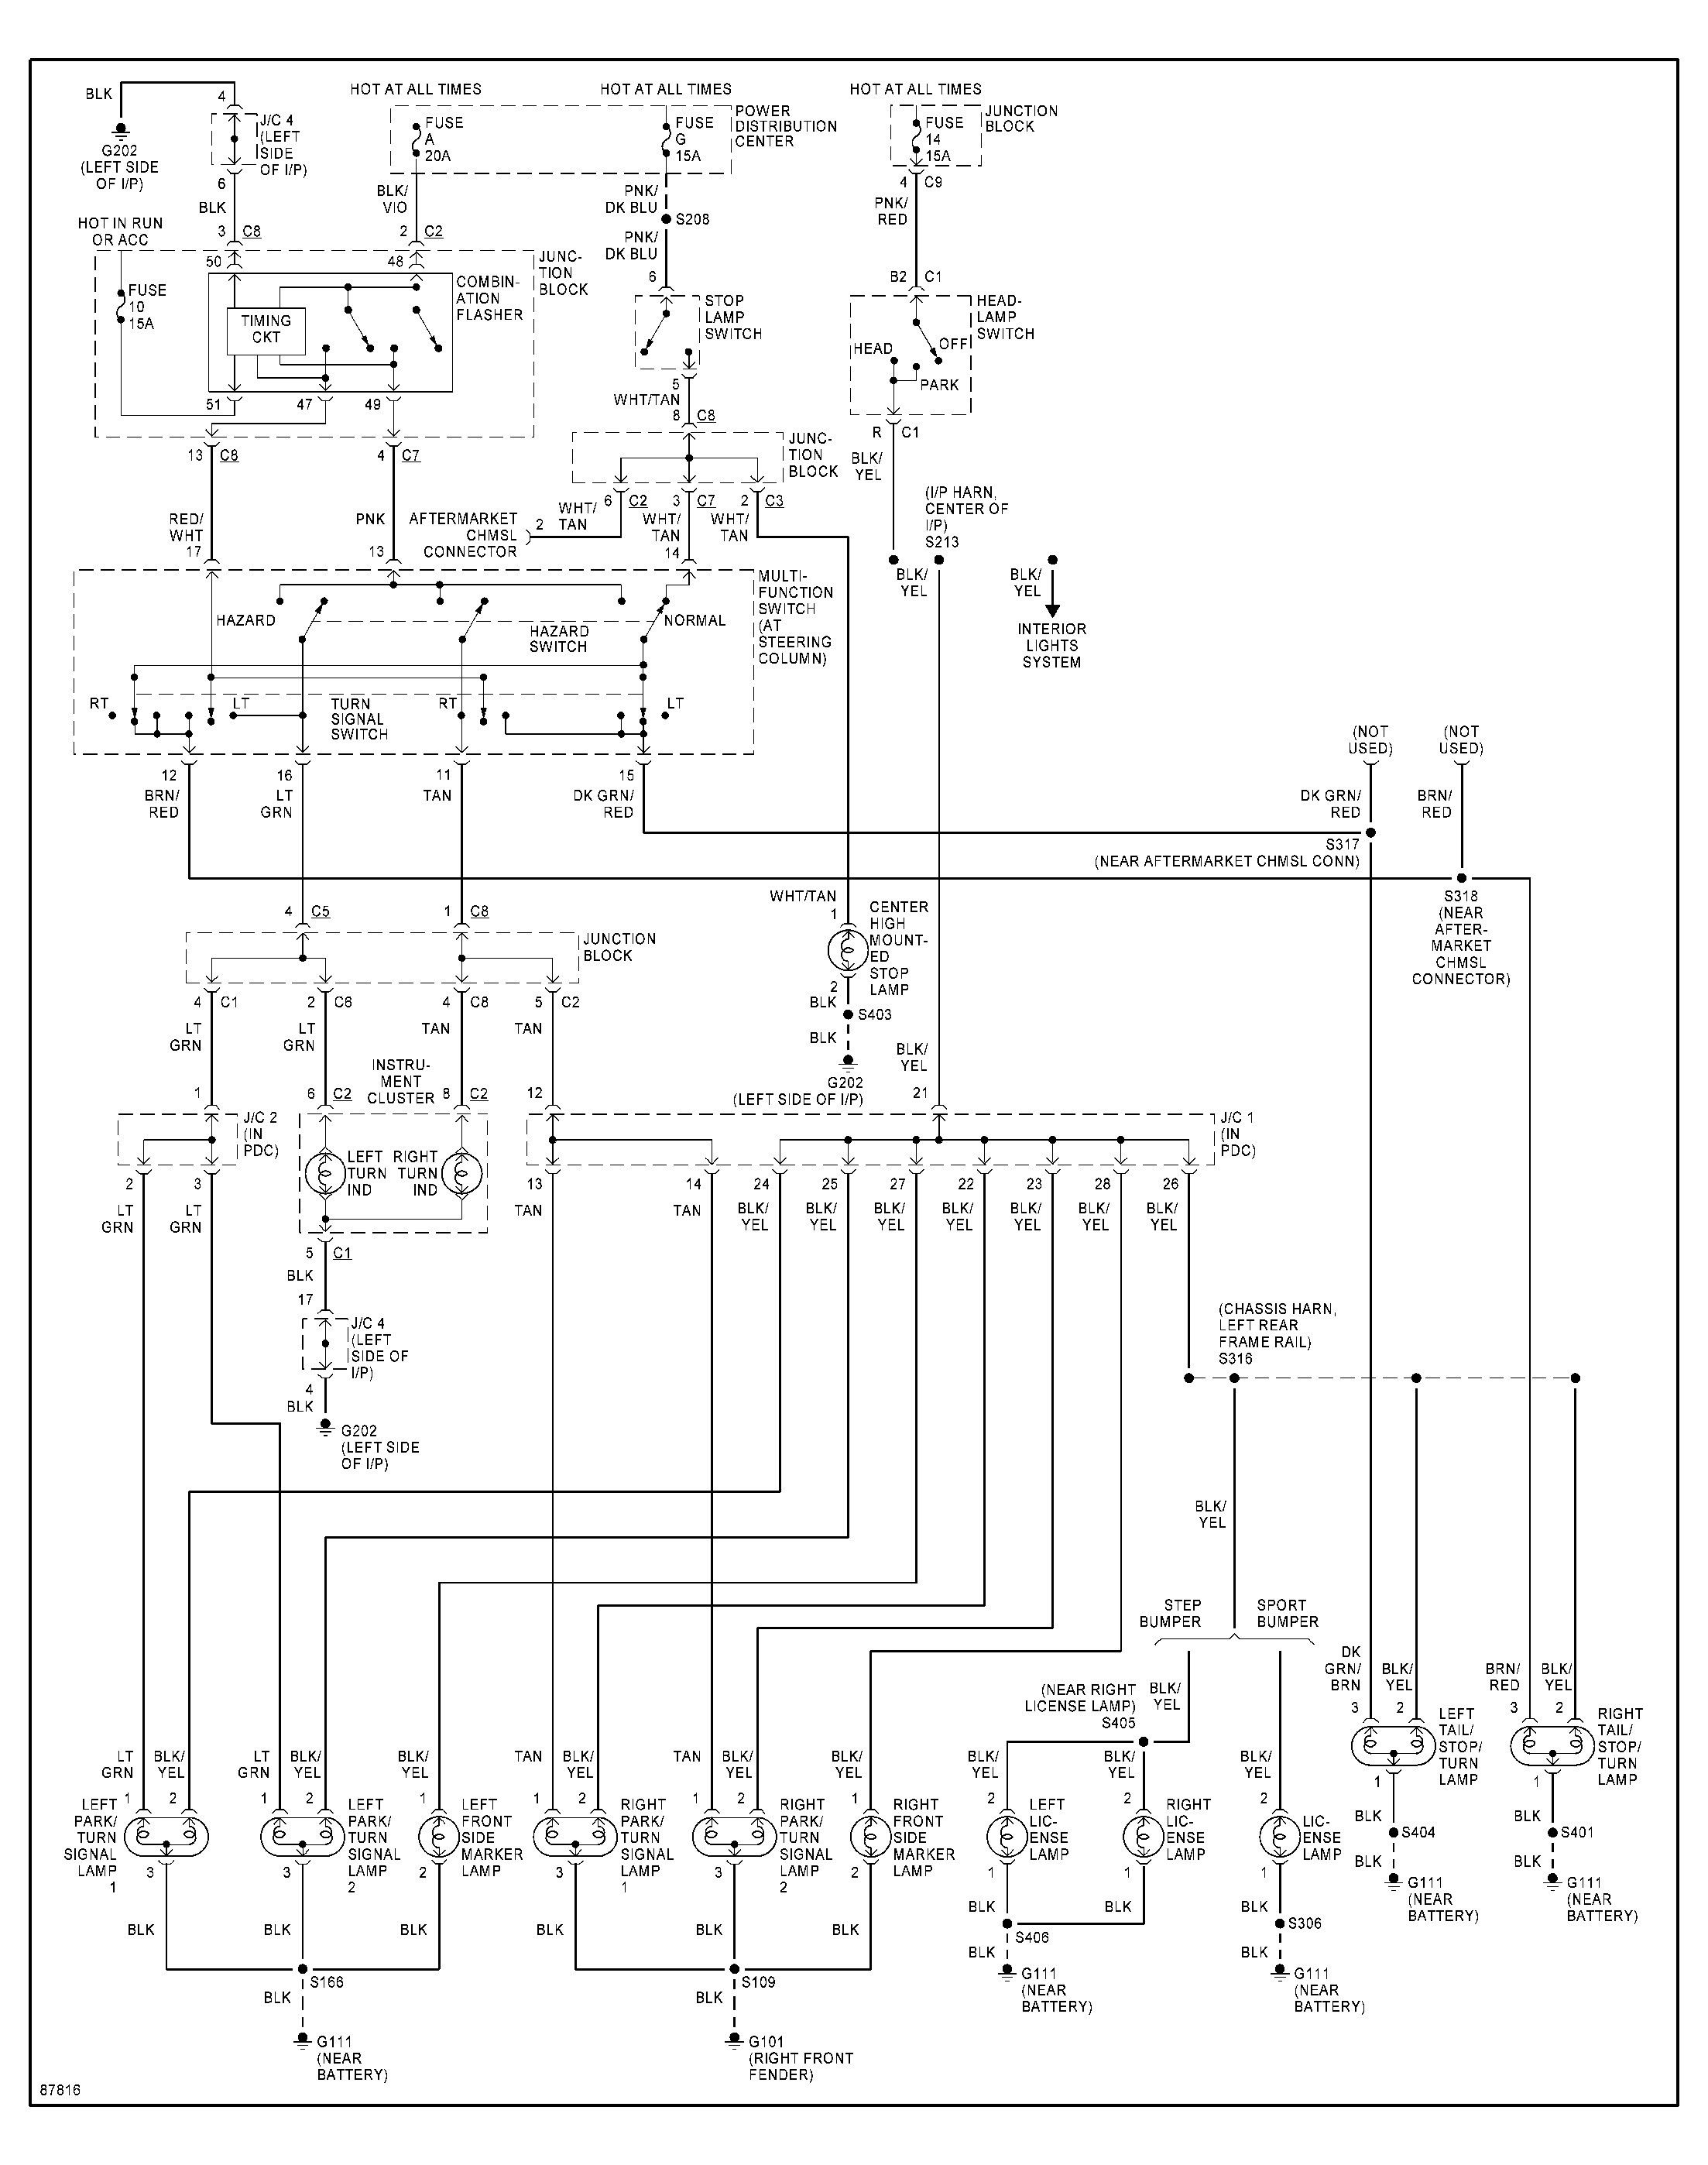 Unique 2002 Dodge Ram 1500 Instrument Cluster Wiring Diagram Diagram Diagramsample Diagramtemplate Wiringdiagram Diag Dodge Ram 1500 Dodge Dakota Ram 1500